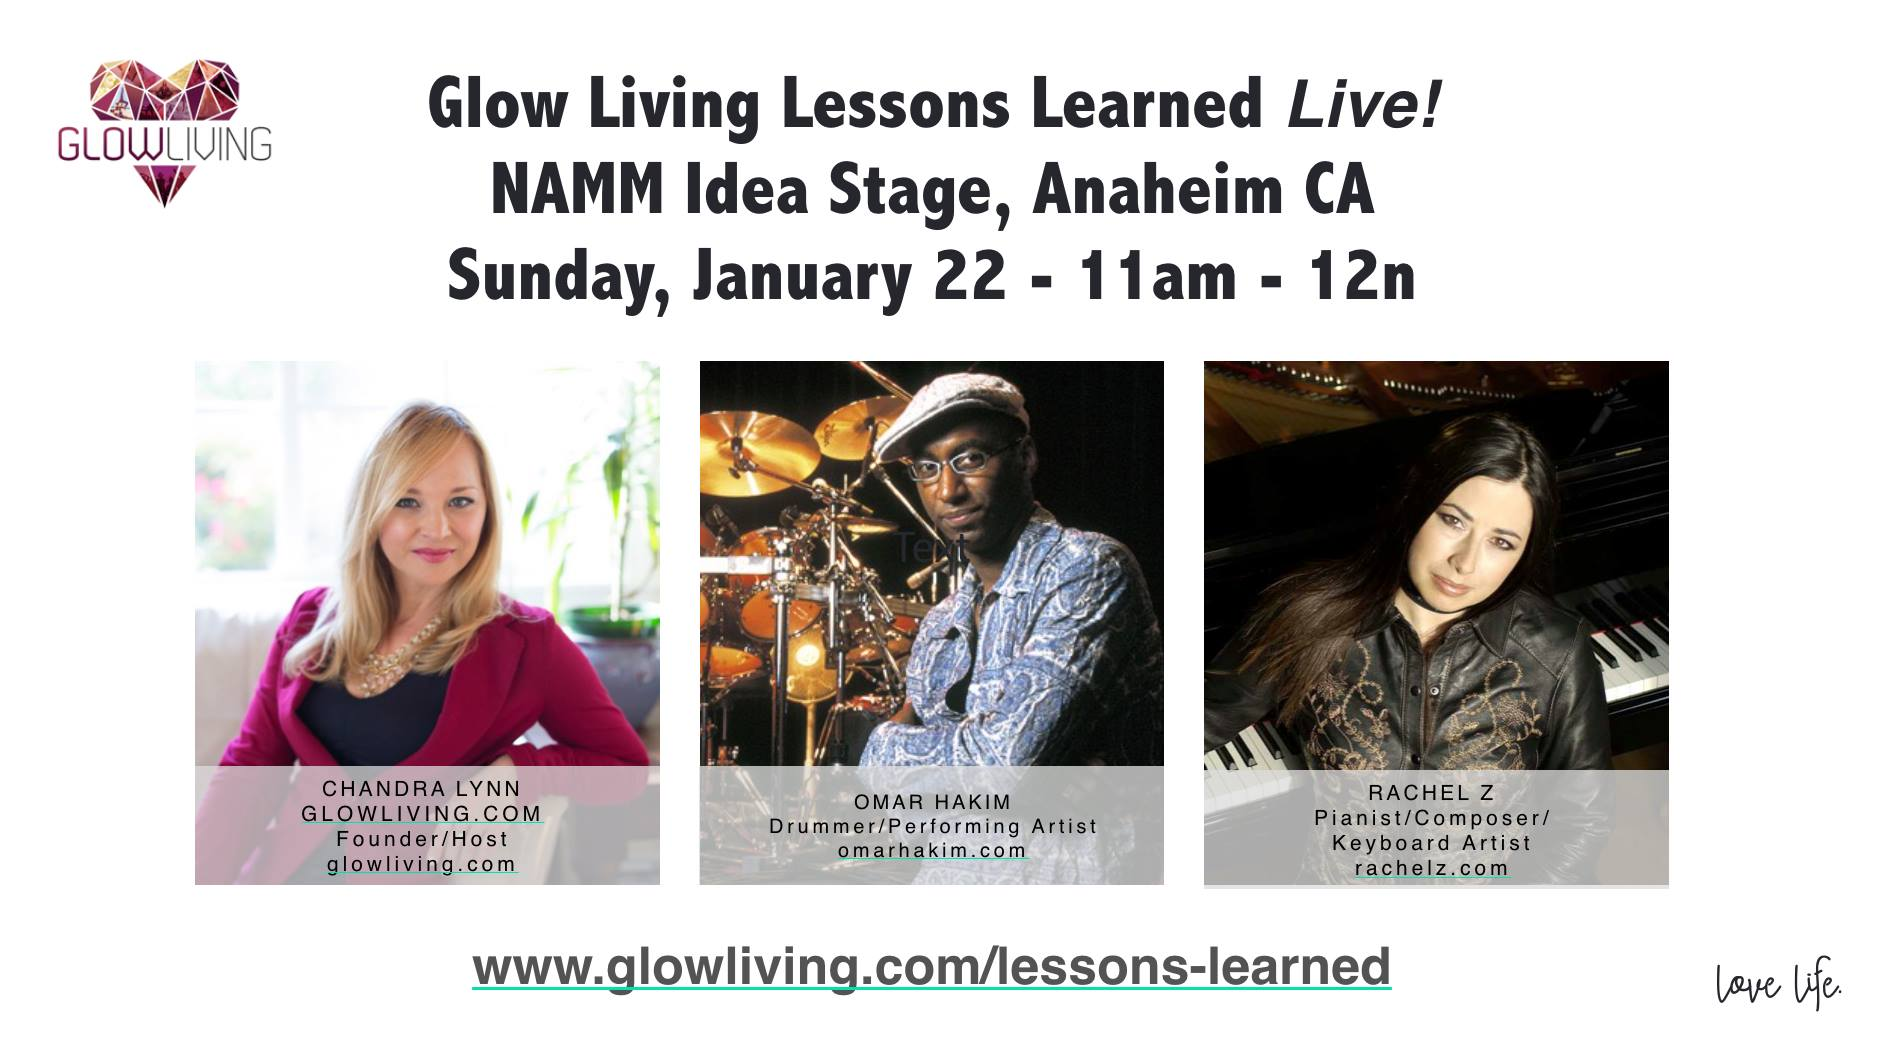 Glow Living's Lessons Learned Goes Live with Omar Hakim & Rachel Z